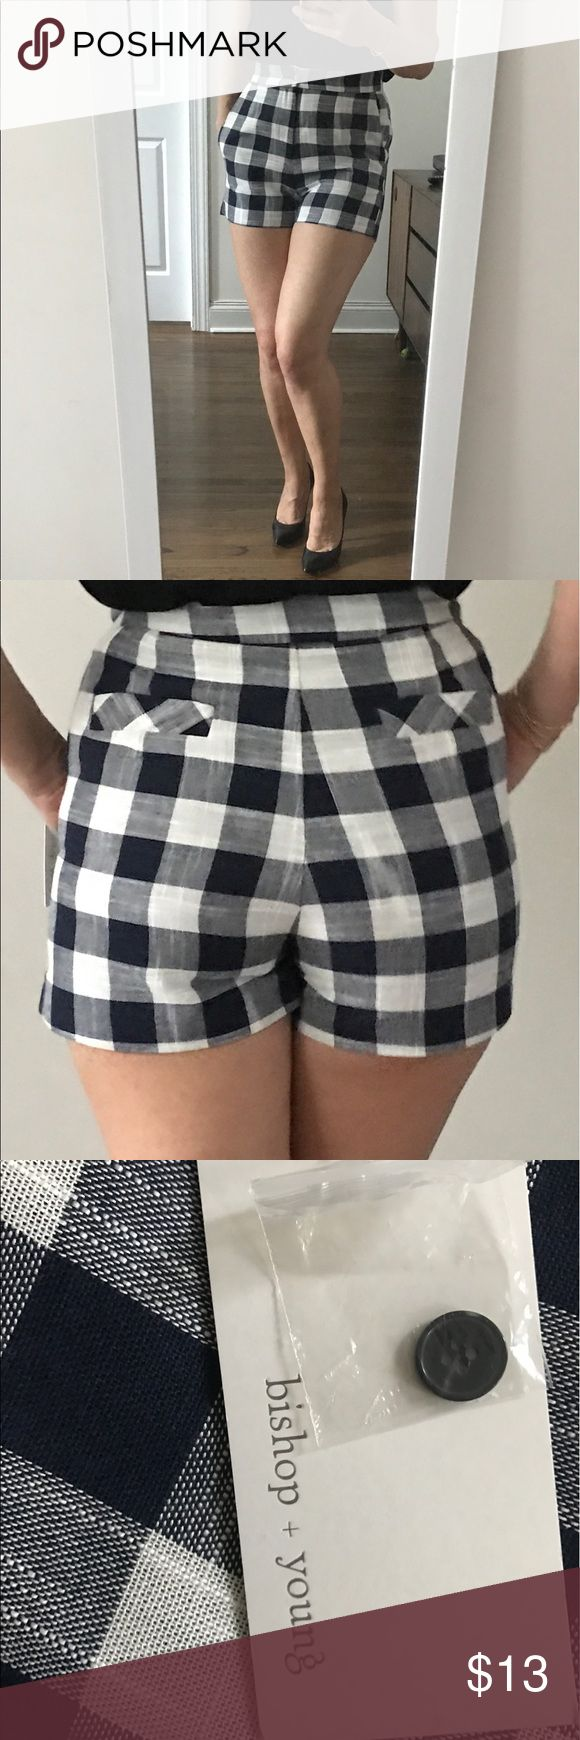 Bishop and Young Blue and White Shorts Size M Moving out sale - everything must go!!!! Beautiful pair of cotton and linen checkered shorts with side pockets. Super cute for the summer and very flattering! The high waist gives it that retro look and they look great in the back as well. Never worn with tag and bought them at Bloomingdales NYC. Bishop + Young  Shorts